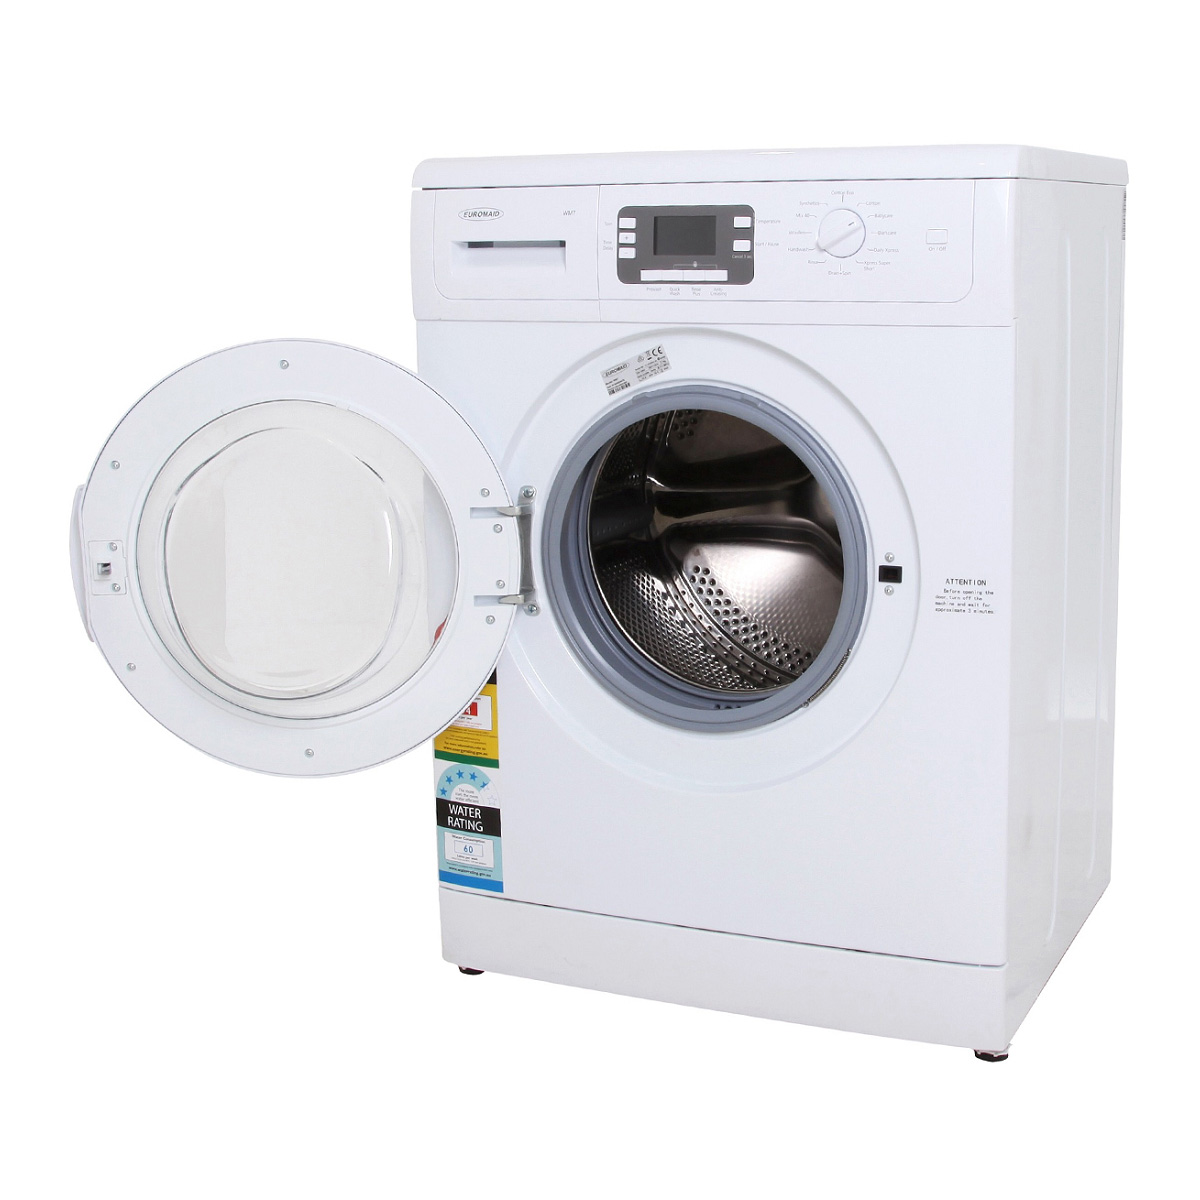 euromaid front loader washing machine instructions